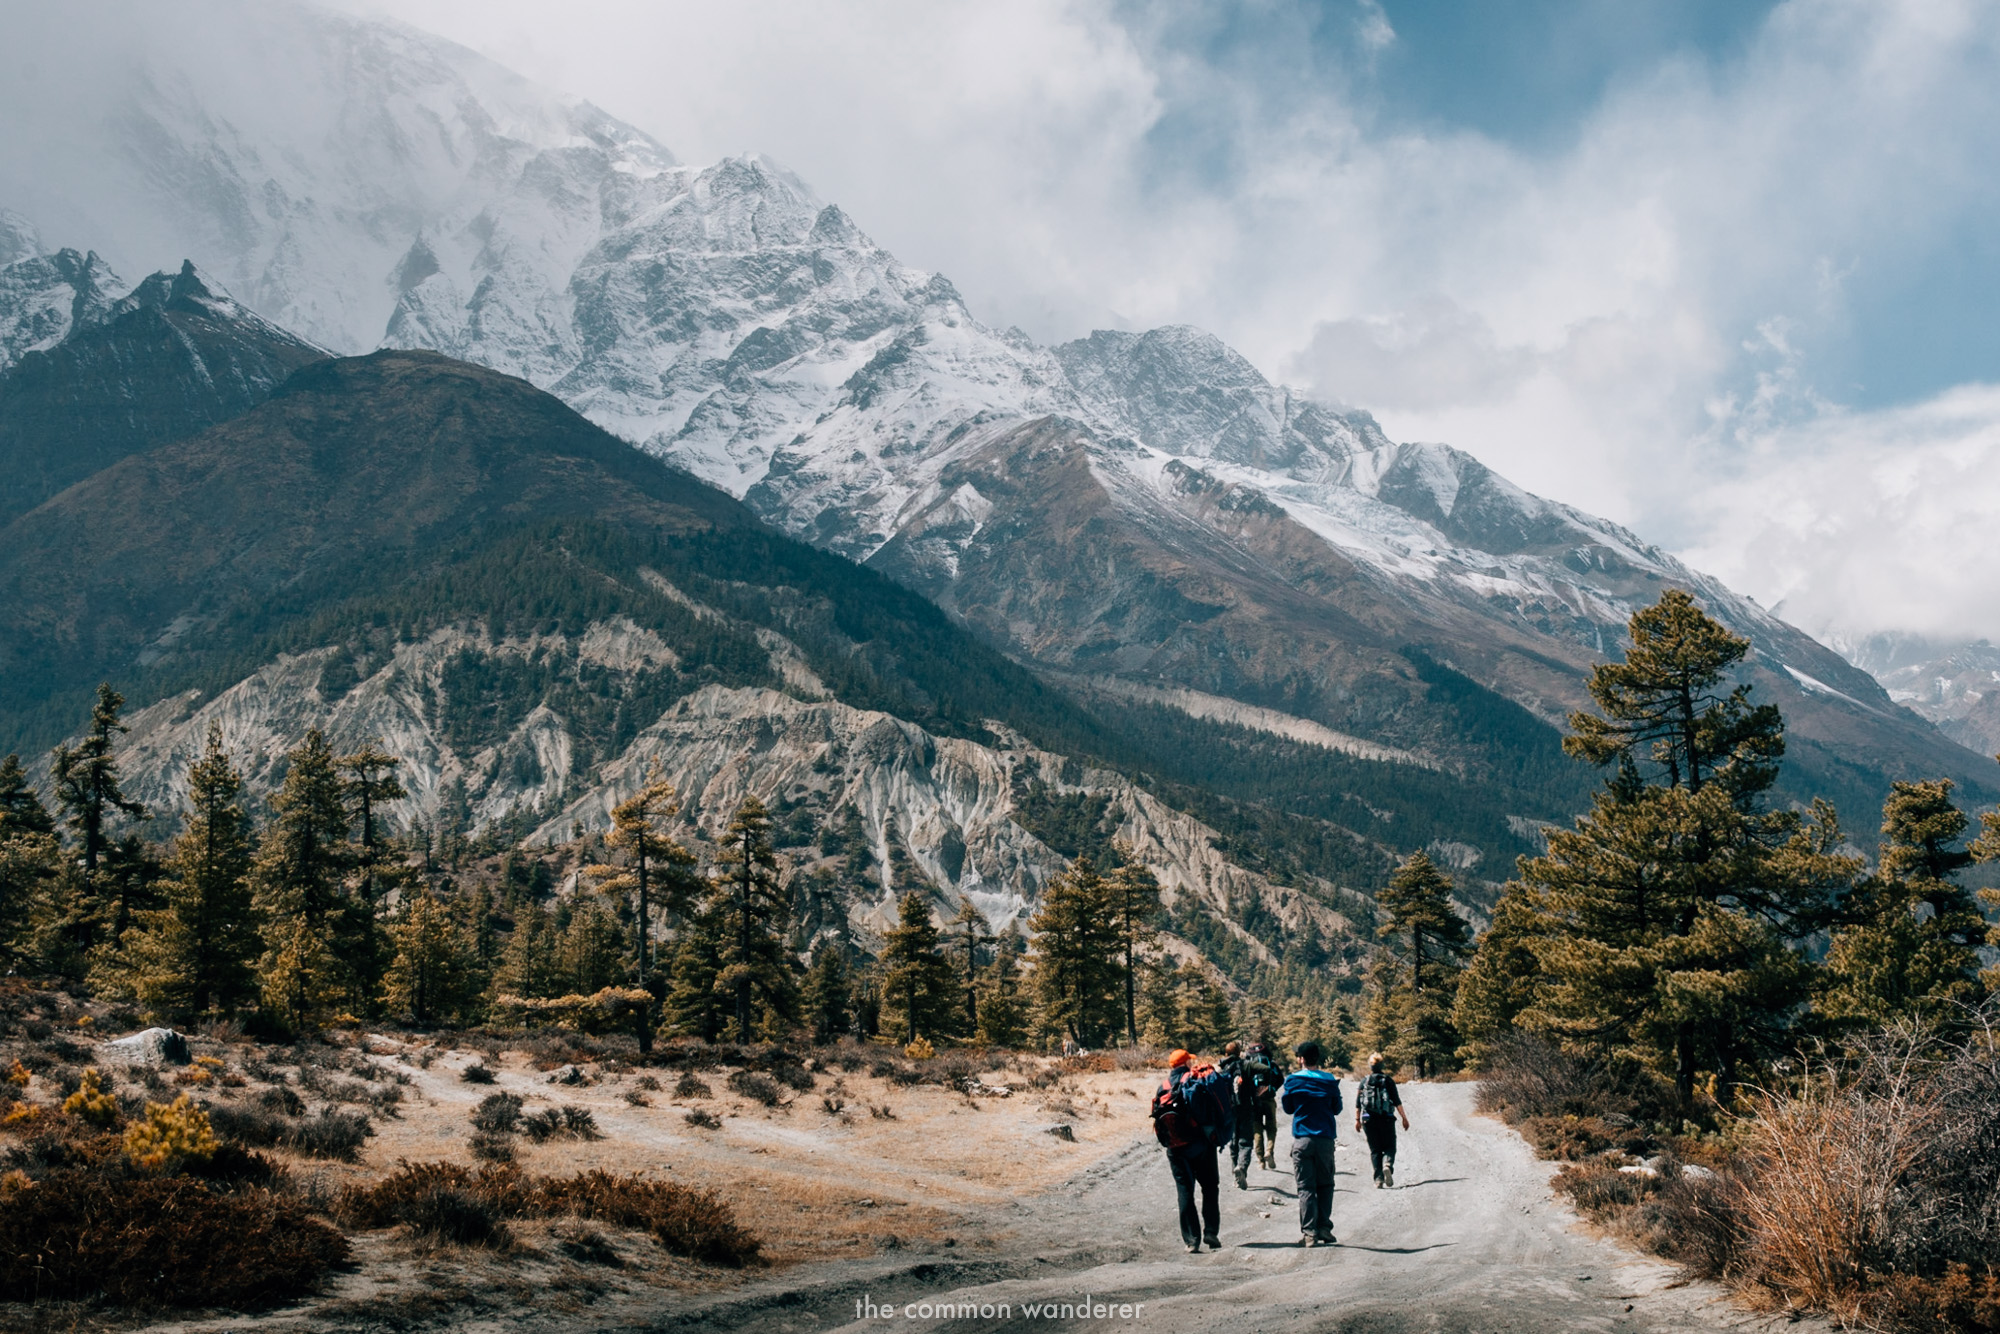 What to pack for the Annapurna circuit trek in Nepal